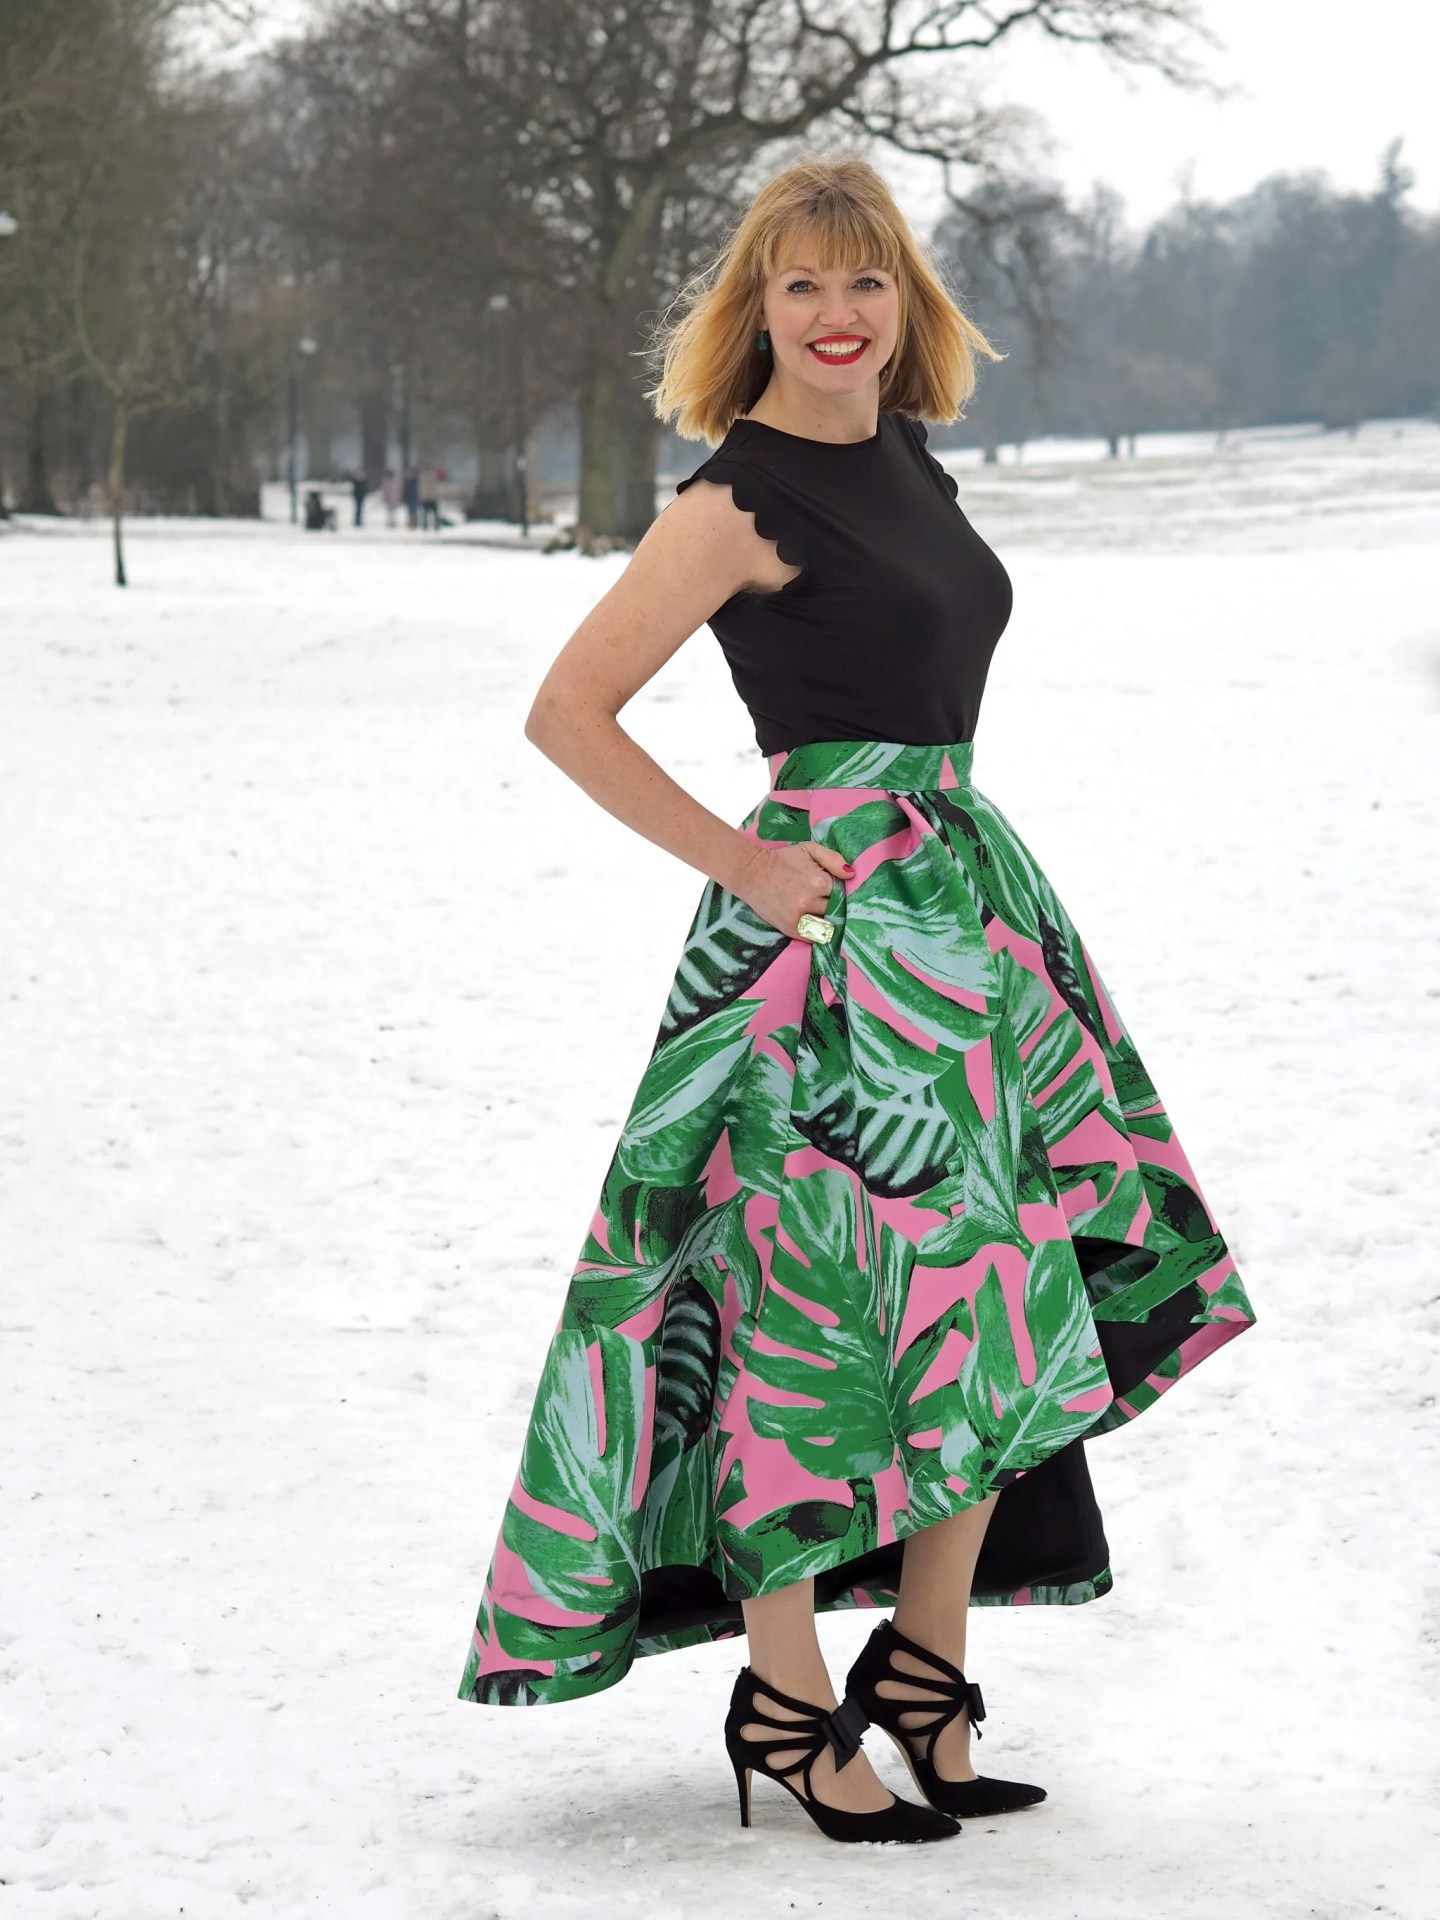 what-lizzy-loves-green and pink skirt-snow